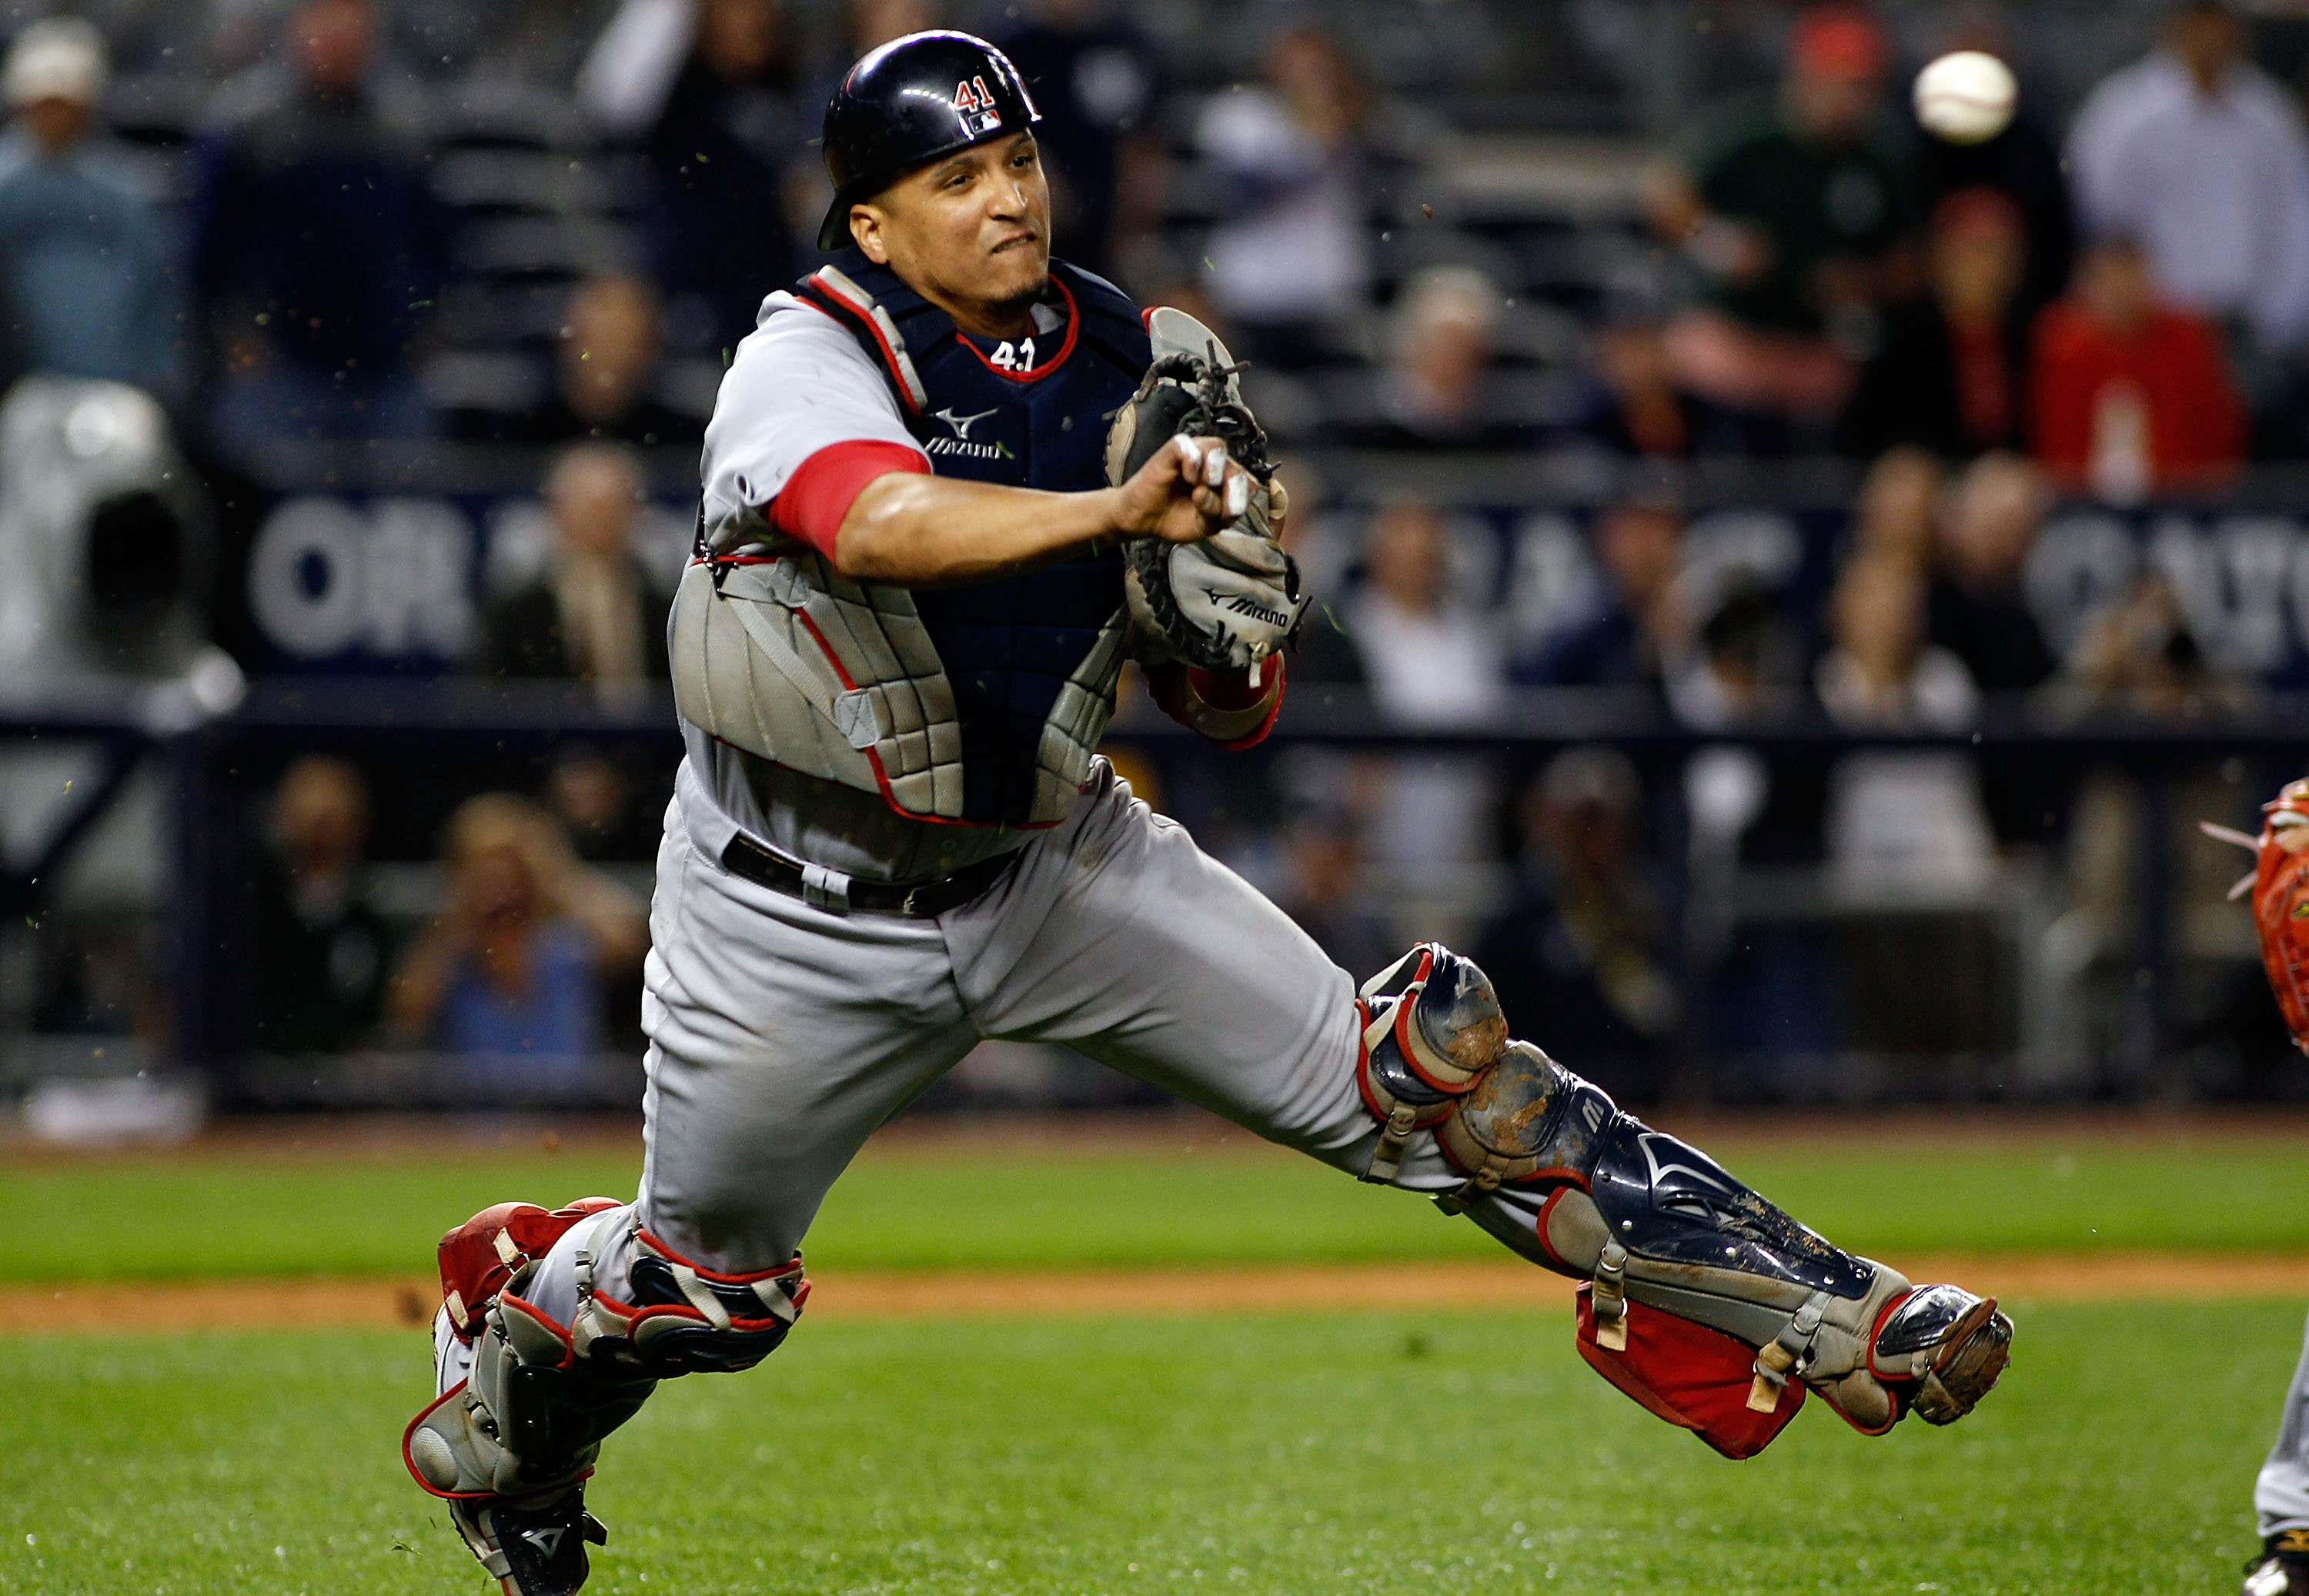 Victor Martinez takes over behind the plate for the Tigers.